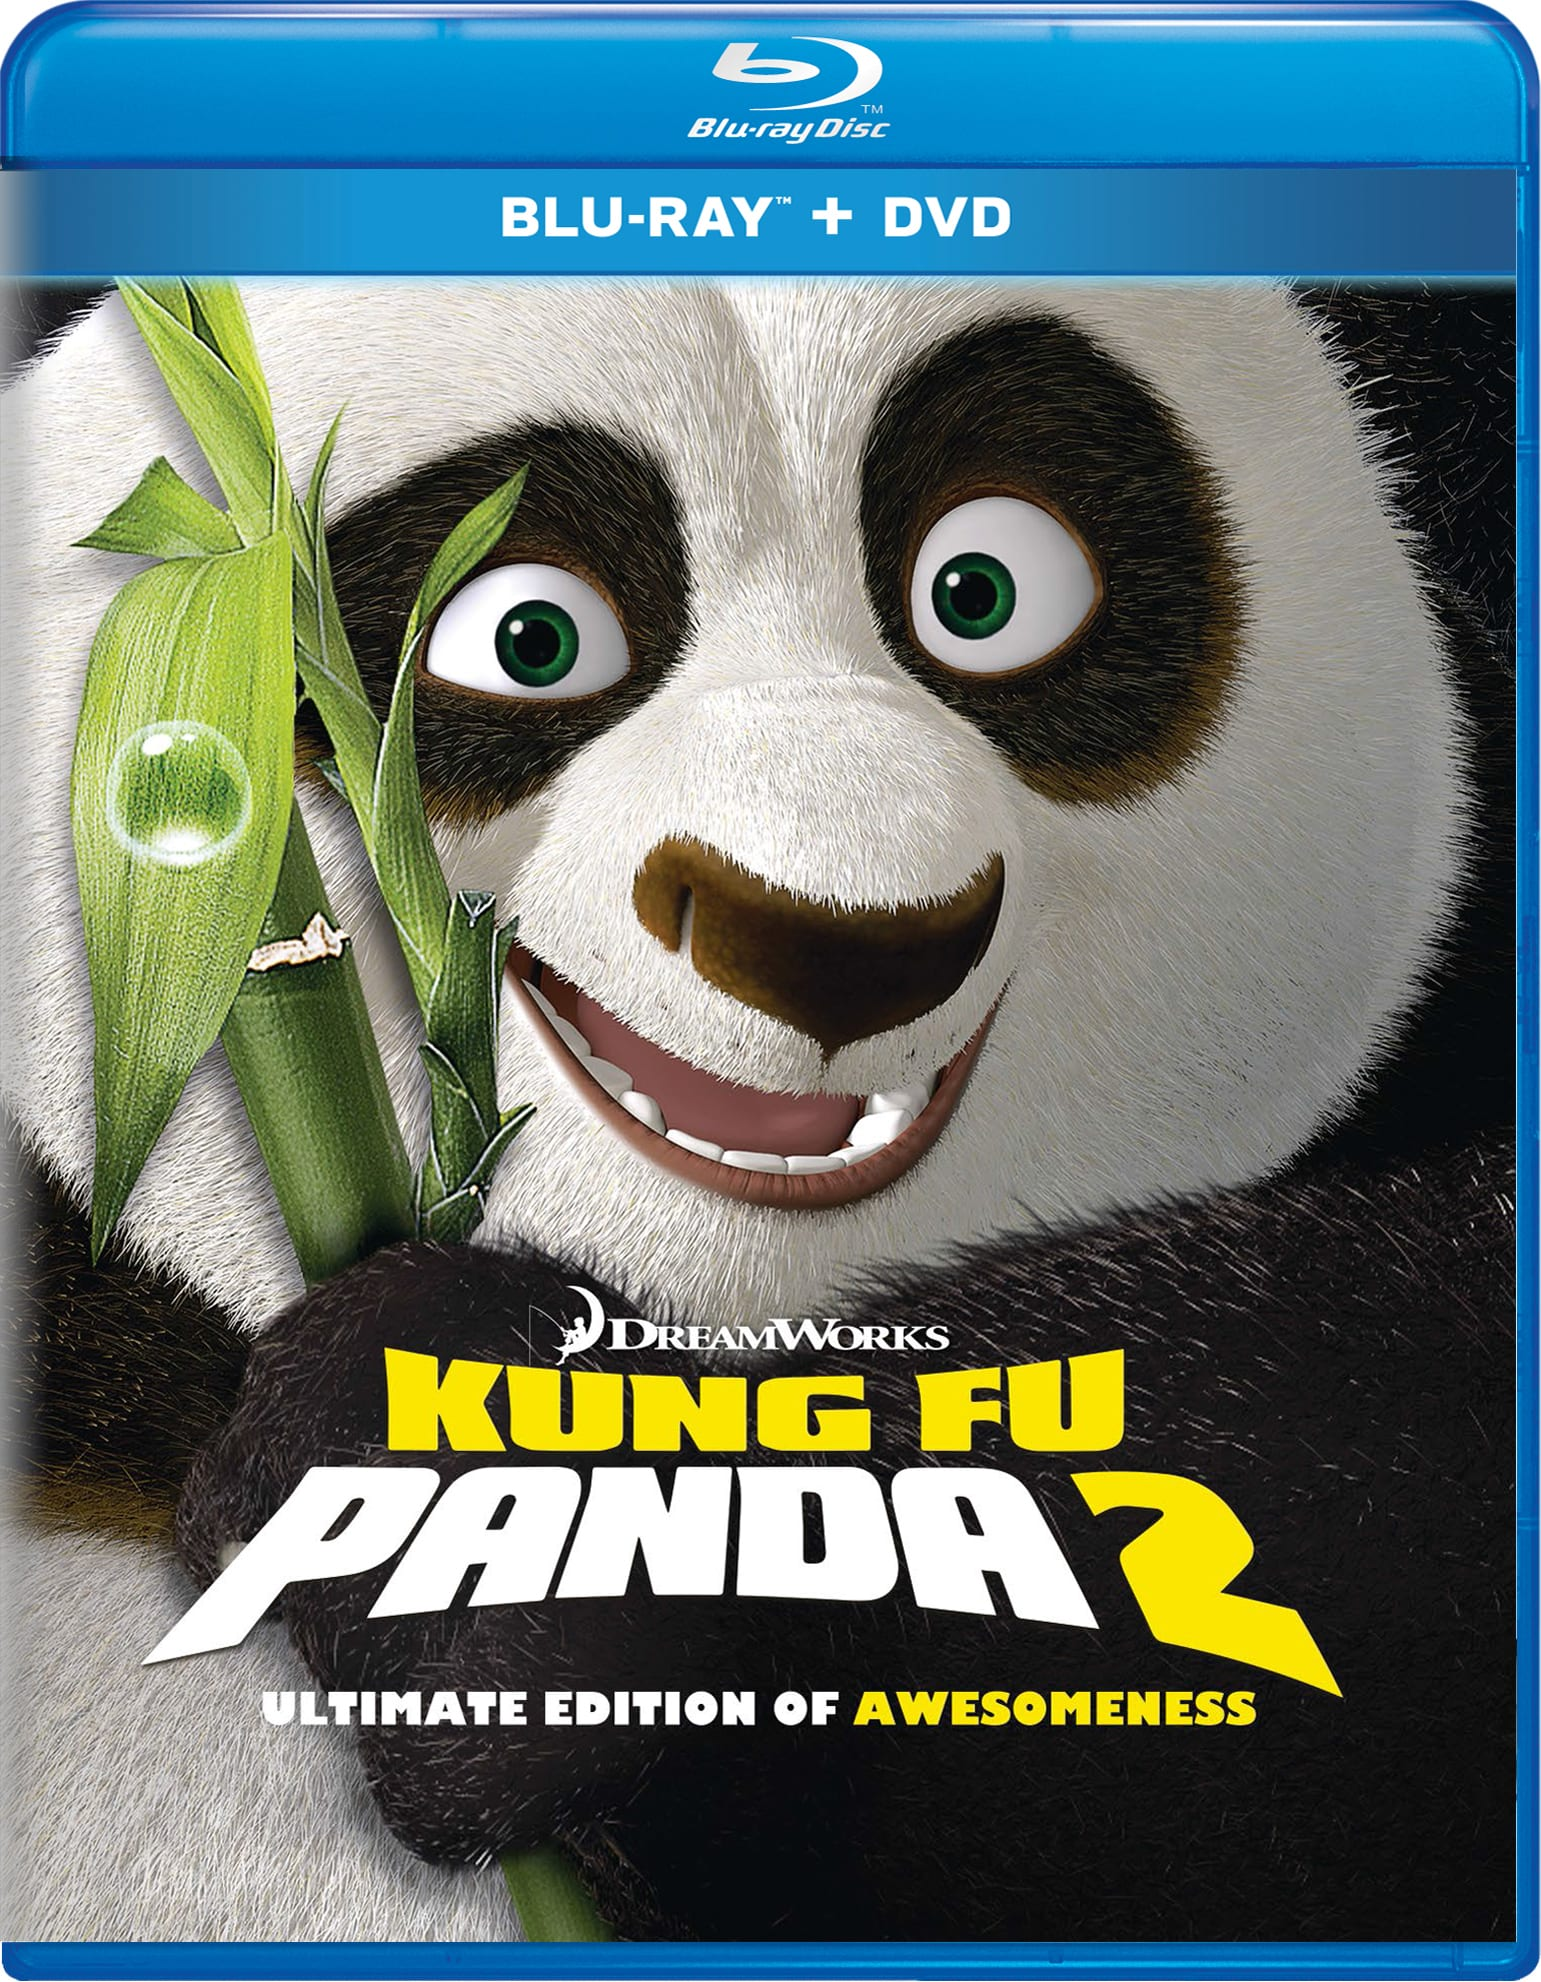 Kung Fu Panda 2 (Ultimate Edition of Awesomeness + Digital) [Blu-ray]